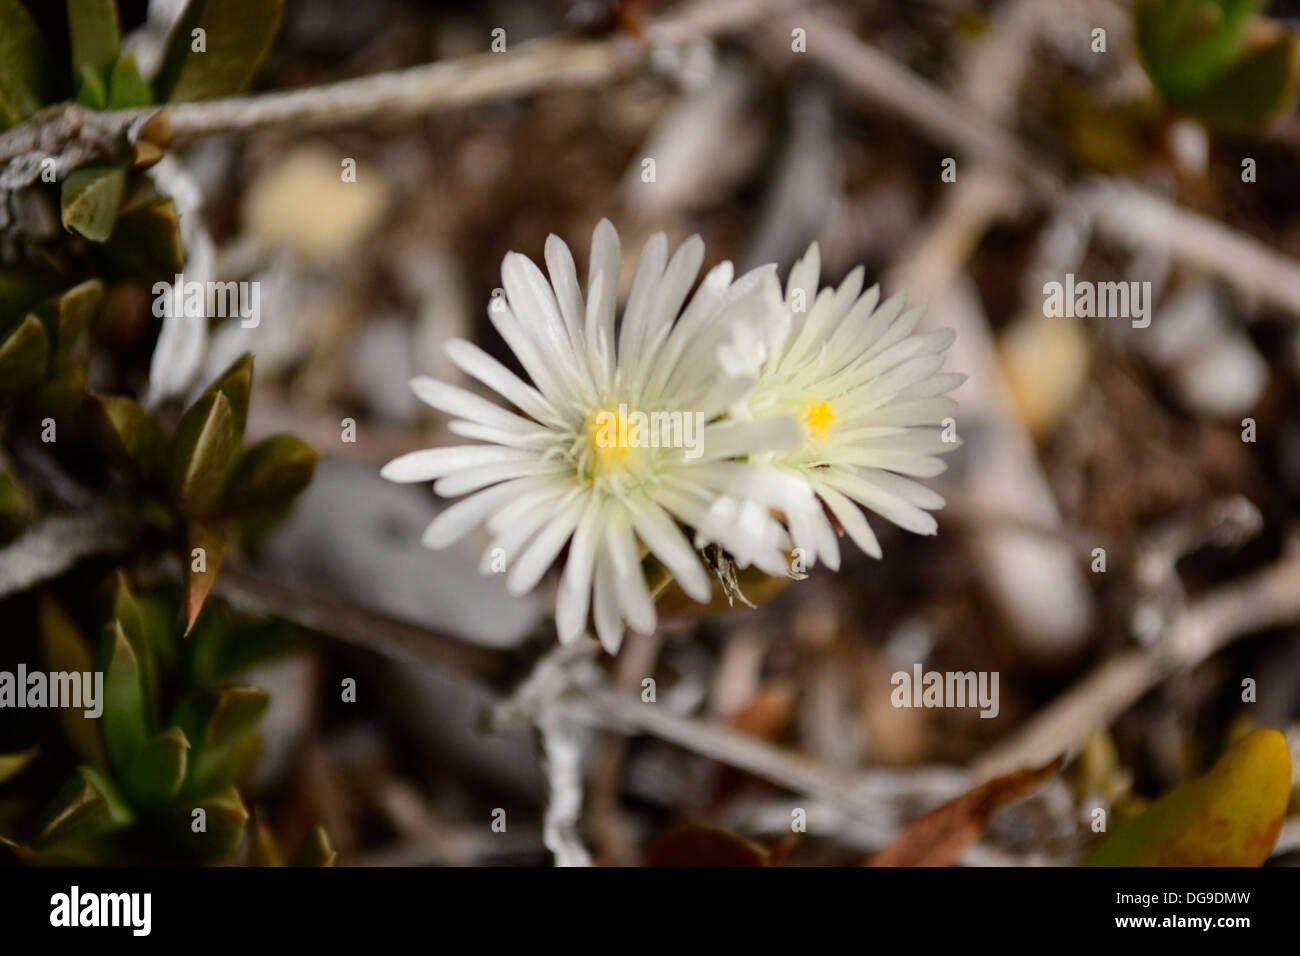 flowers fynbos stockfotos flowers fynbos bilder alamy. Black Bedroom Furniture Sets. Home Design Ideas